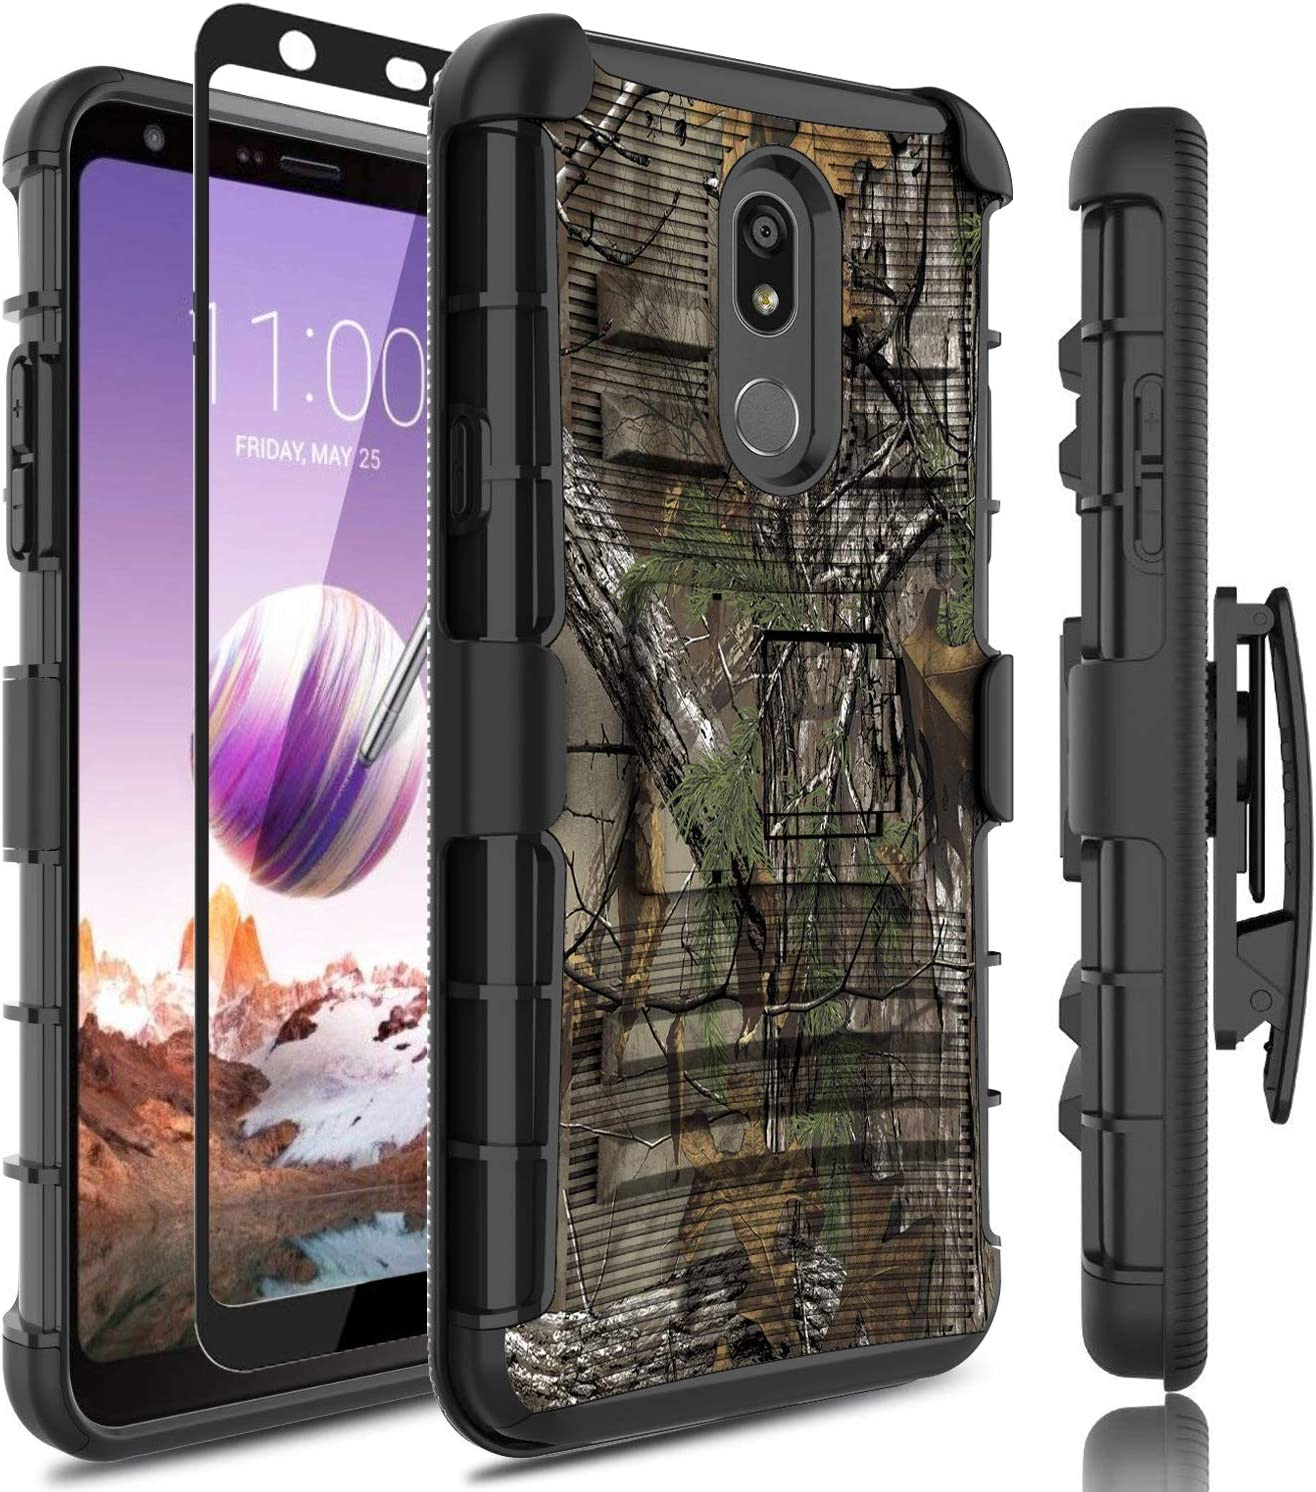 LG Stylo 5 Case,w/[Full Cover Tempered Glass Screen Protector] Bulit in Kickstand Heavy Duty Protection Holster Belt Clip PC Rugged Rubber Silicone Armor Phone Case Cover for LG Stylo 5(Camo)